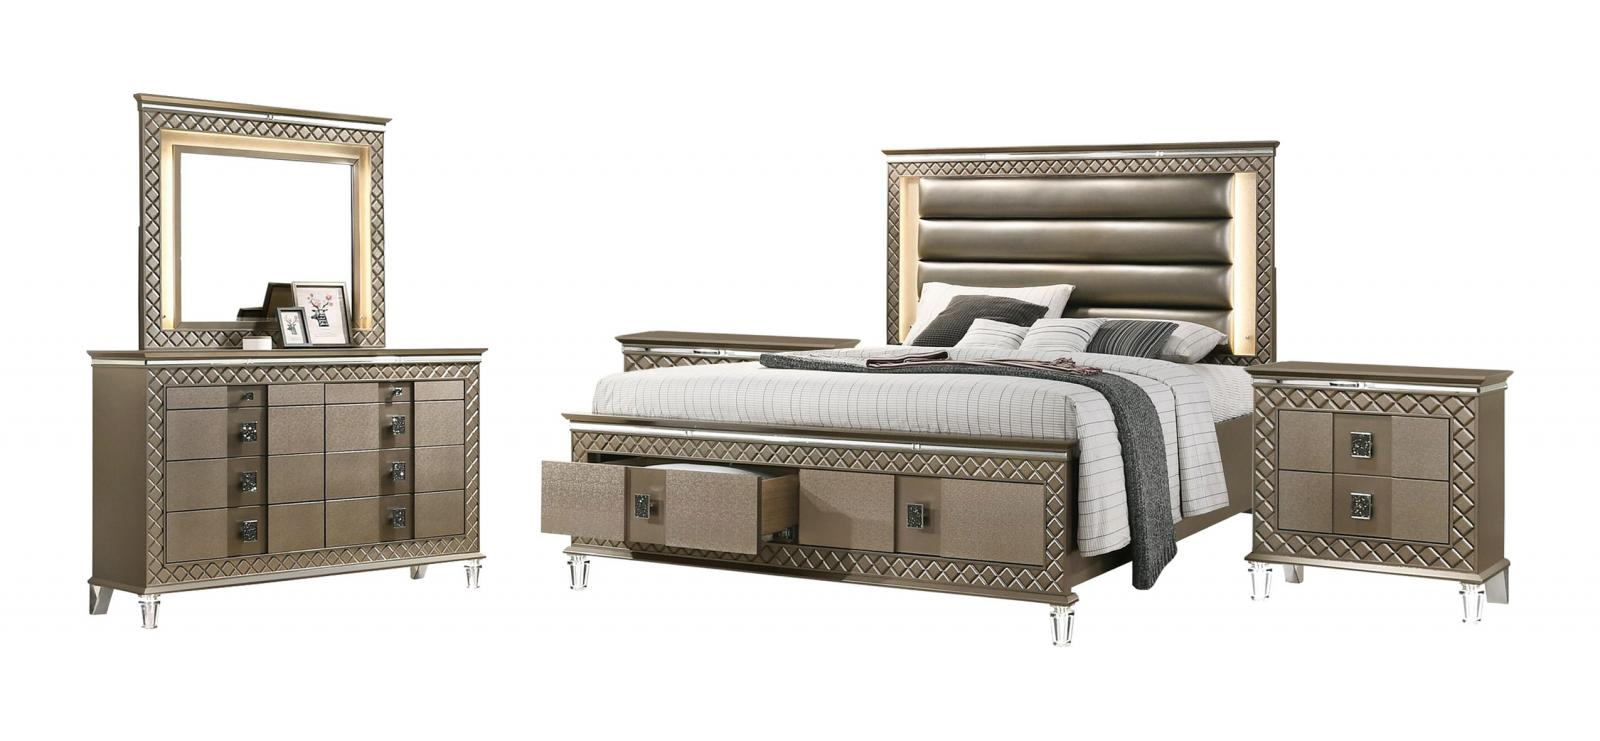 Contemporary Bronze Faux Leather Panel Bedroom Set 5 pcs Cosmos Furniture Coral-Q-Set-5